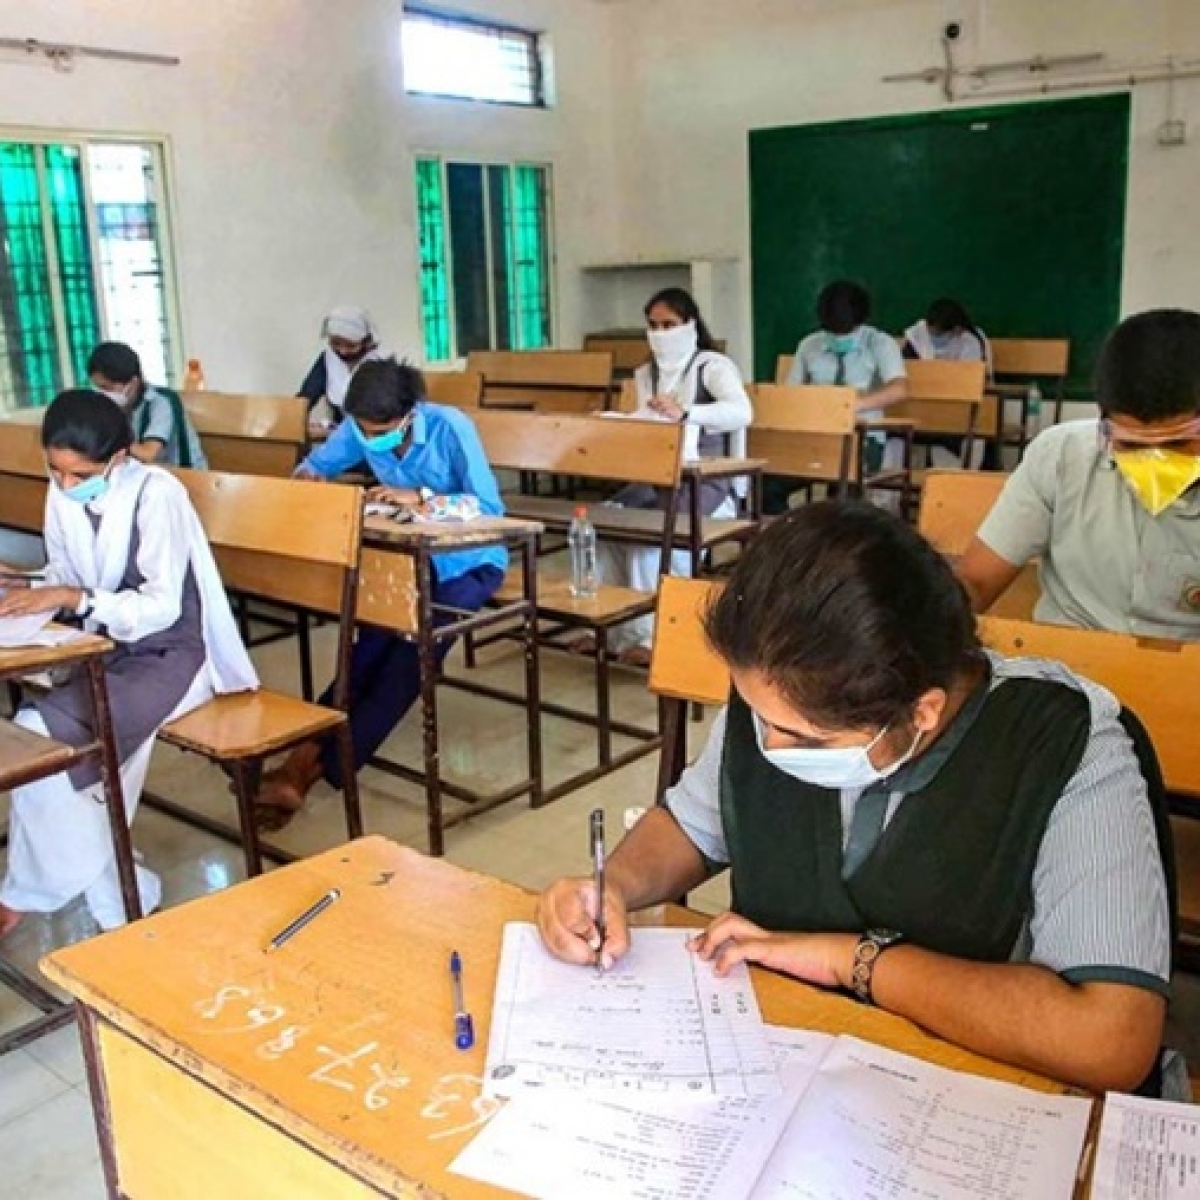 As govt postpones CBSE Class 12 exams, Opposition calls for cancellation - Story so far